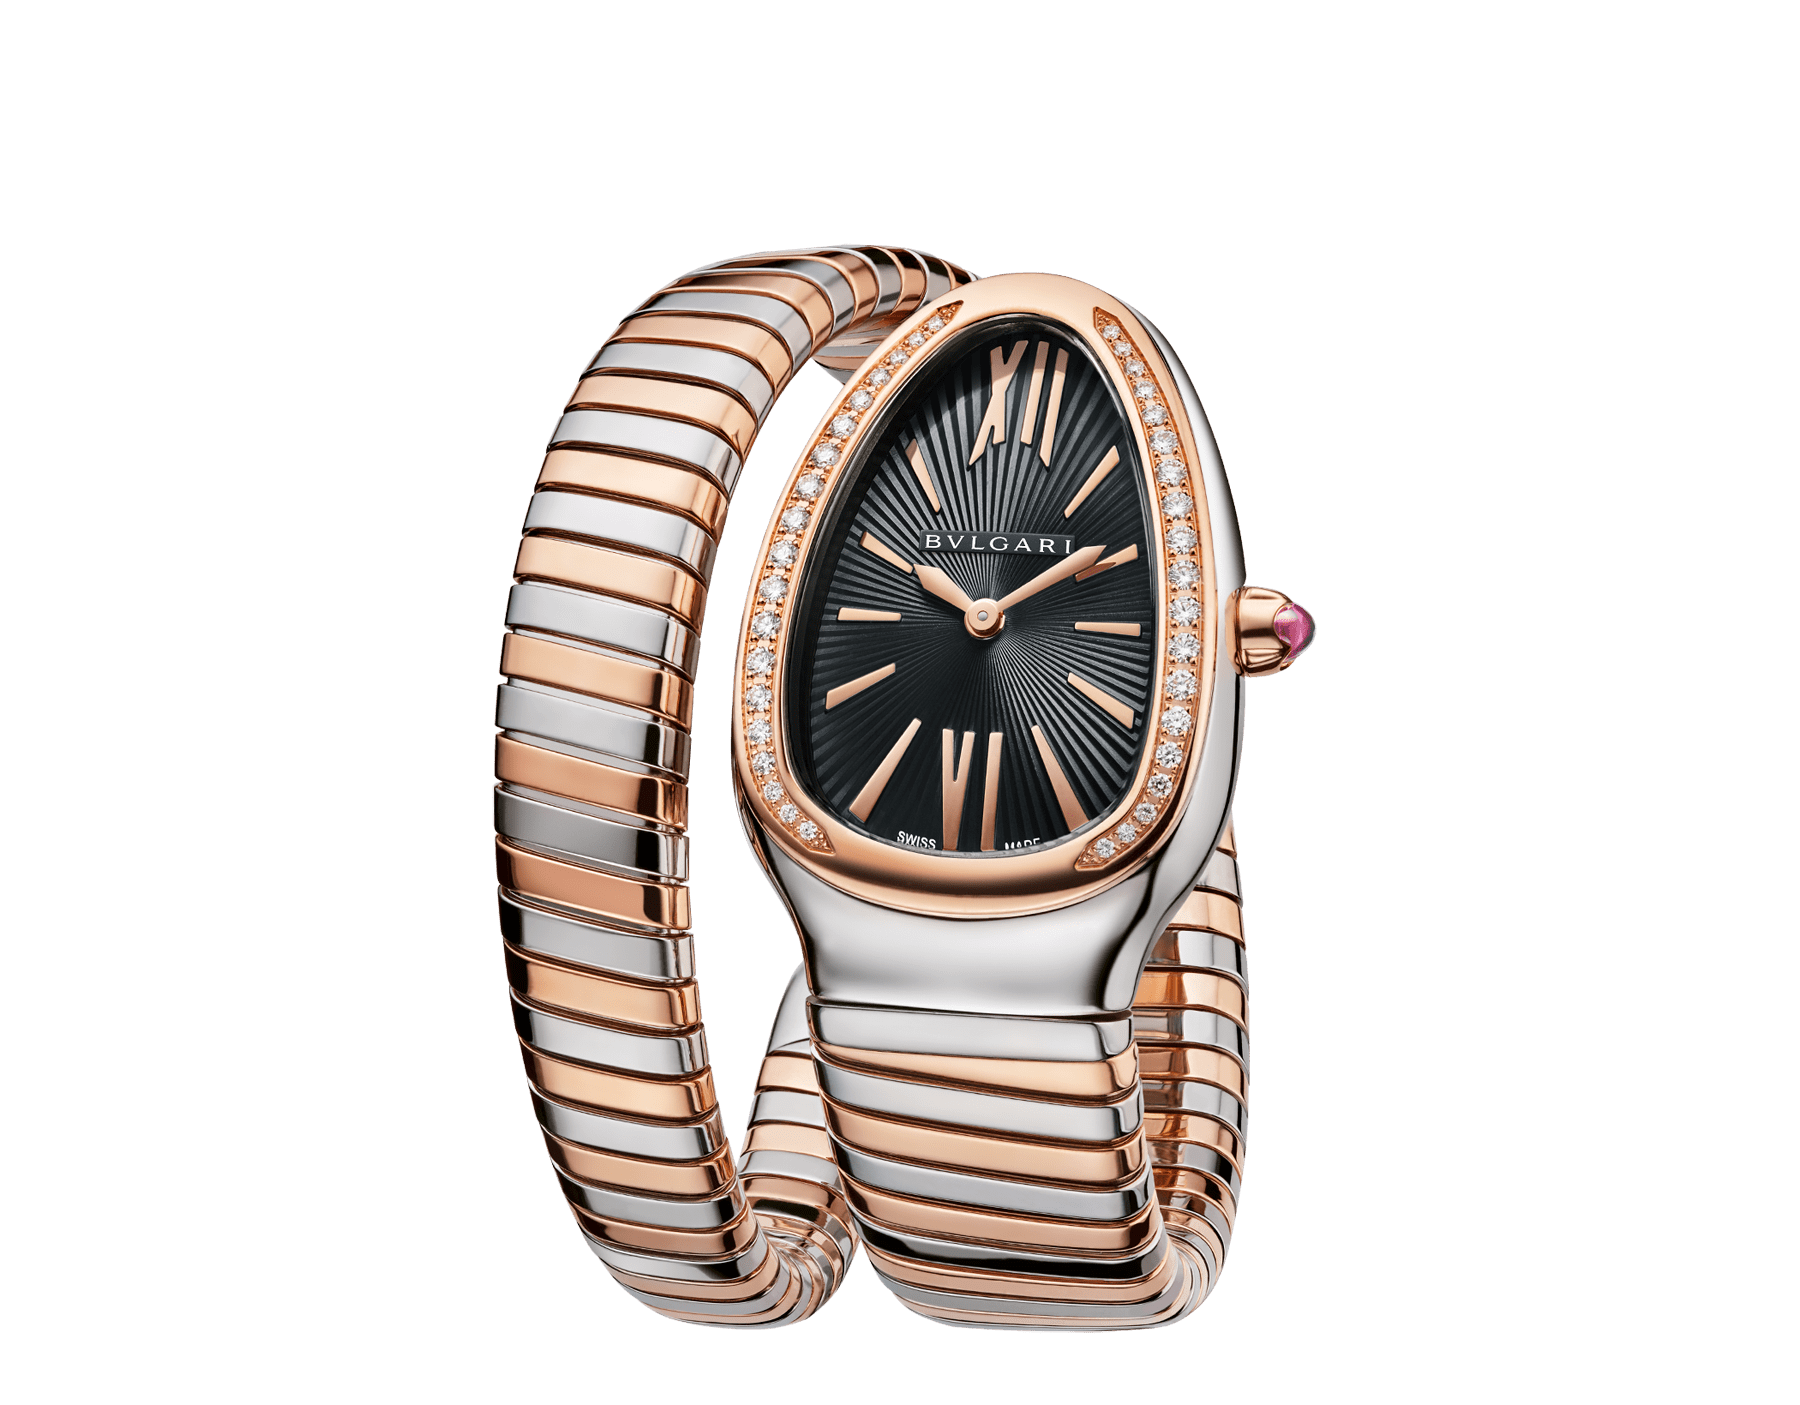 Serpenti Tubogas single spiral watch with stainless steel case, 18 kt rose gold bezel set with brilliant cut diamonds, black opaline dial, 18 kt rose gold and stainless steel bracelet. 102098 image 2